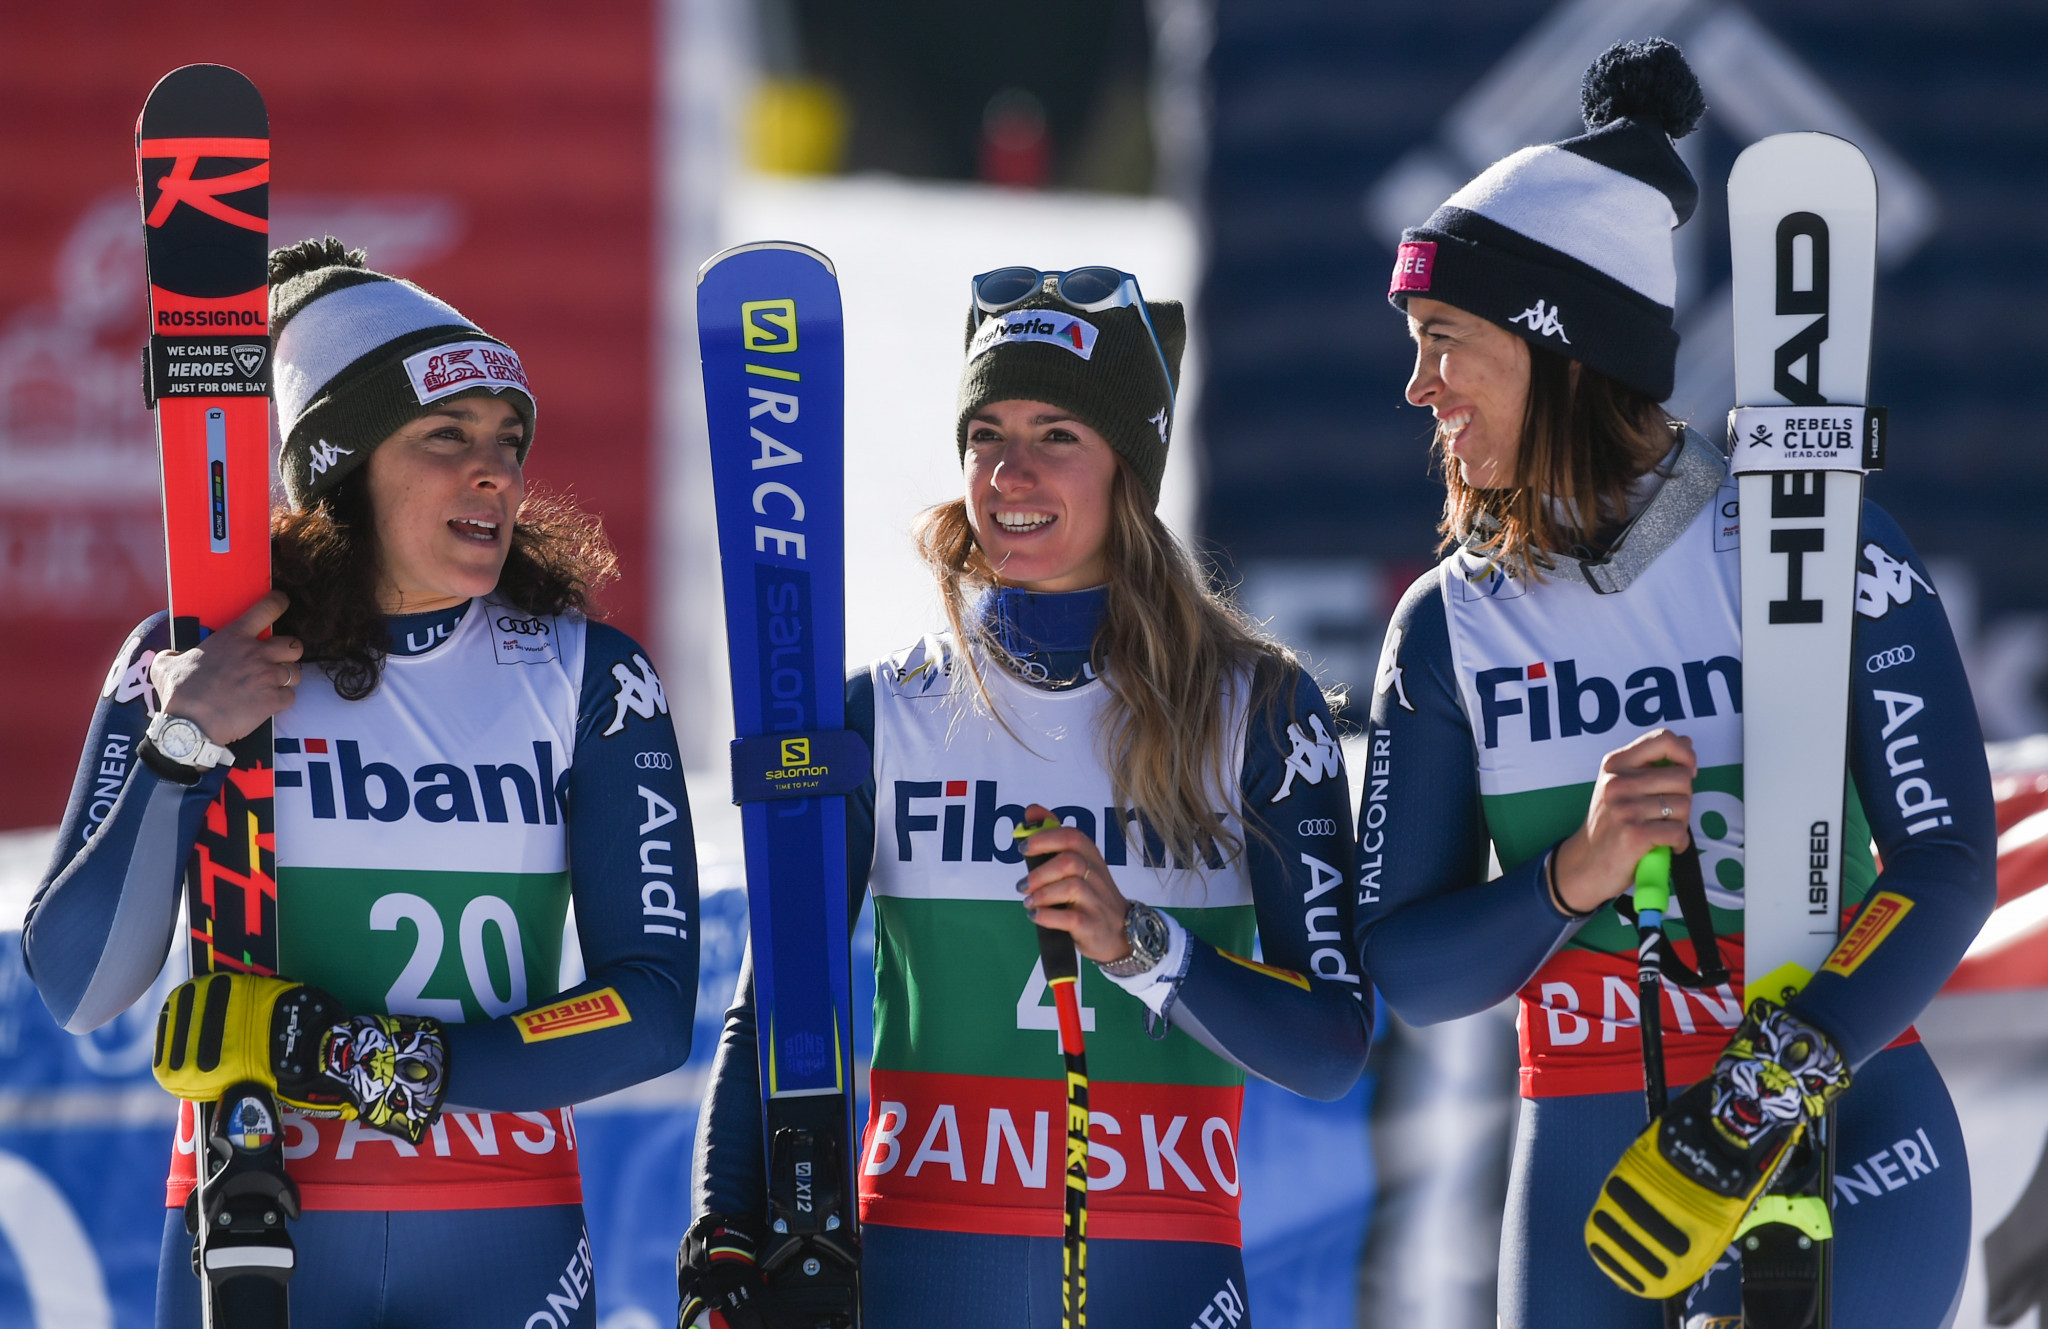 Curtoni triumphs in FIS World Cup as Italy lock out women's downhill ski podium